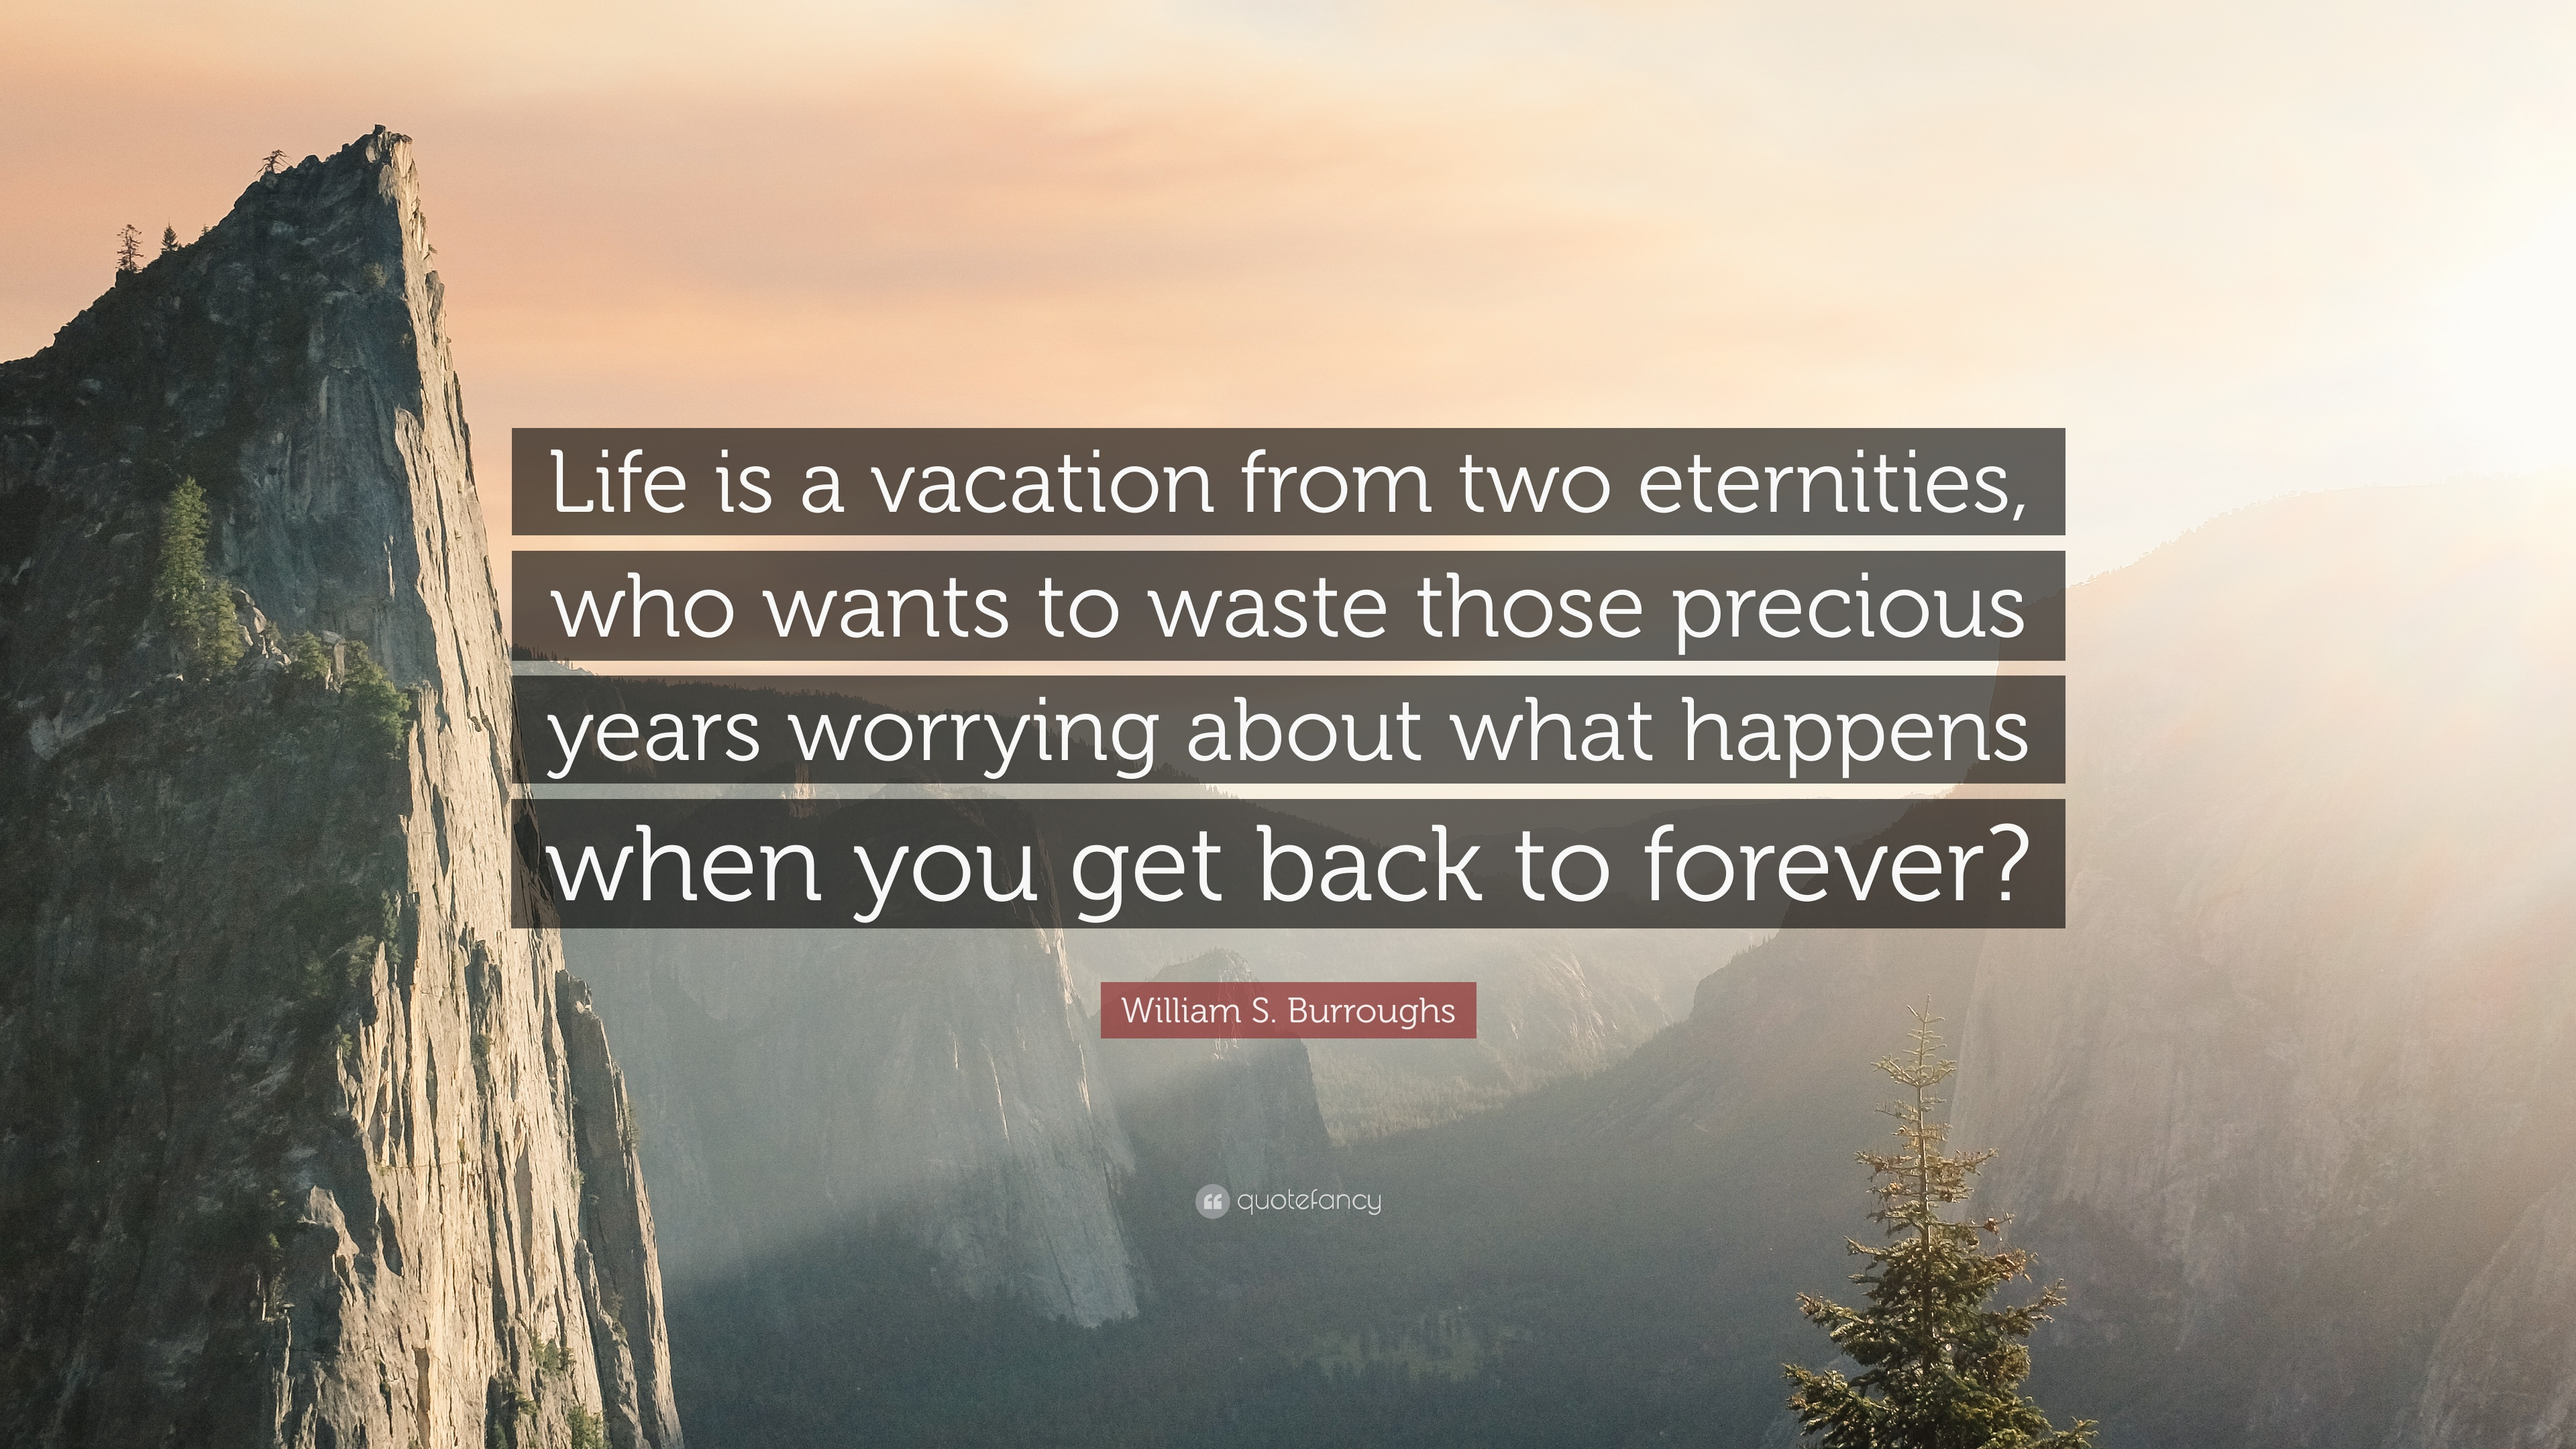 William S Burroughs Quote Life Is A Vacation From Two Eternities